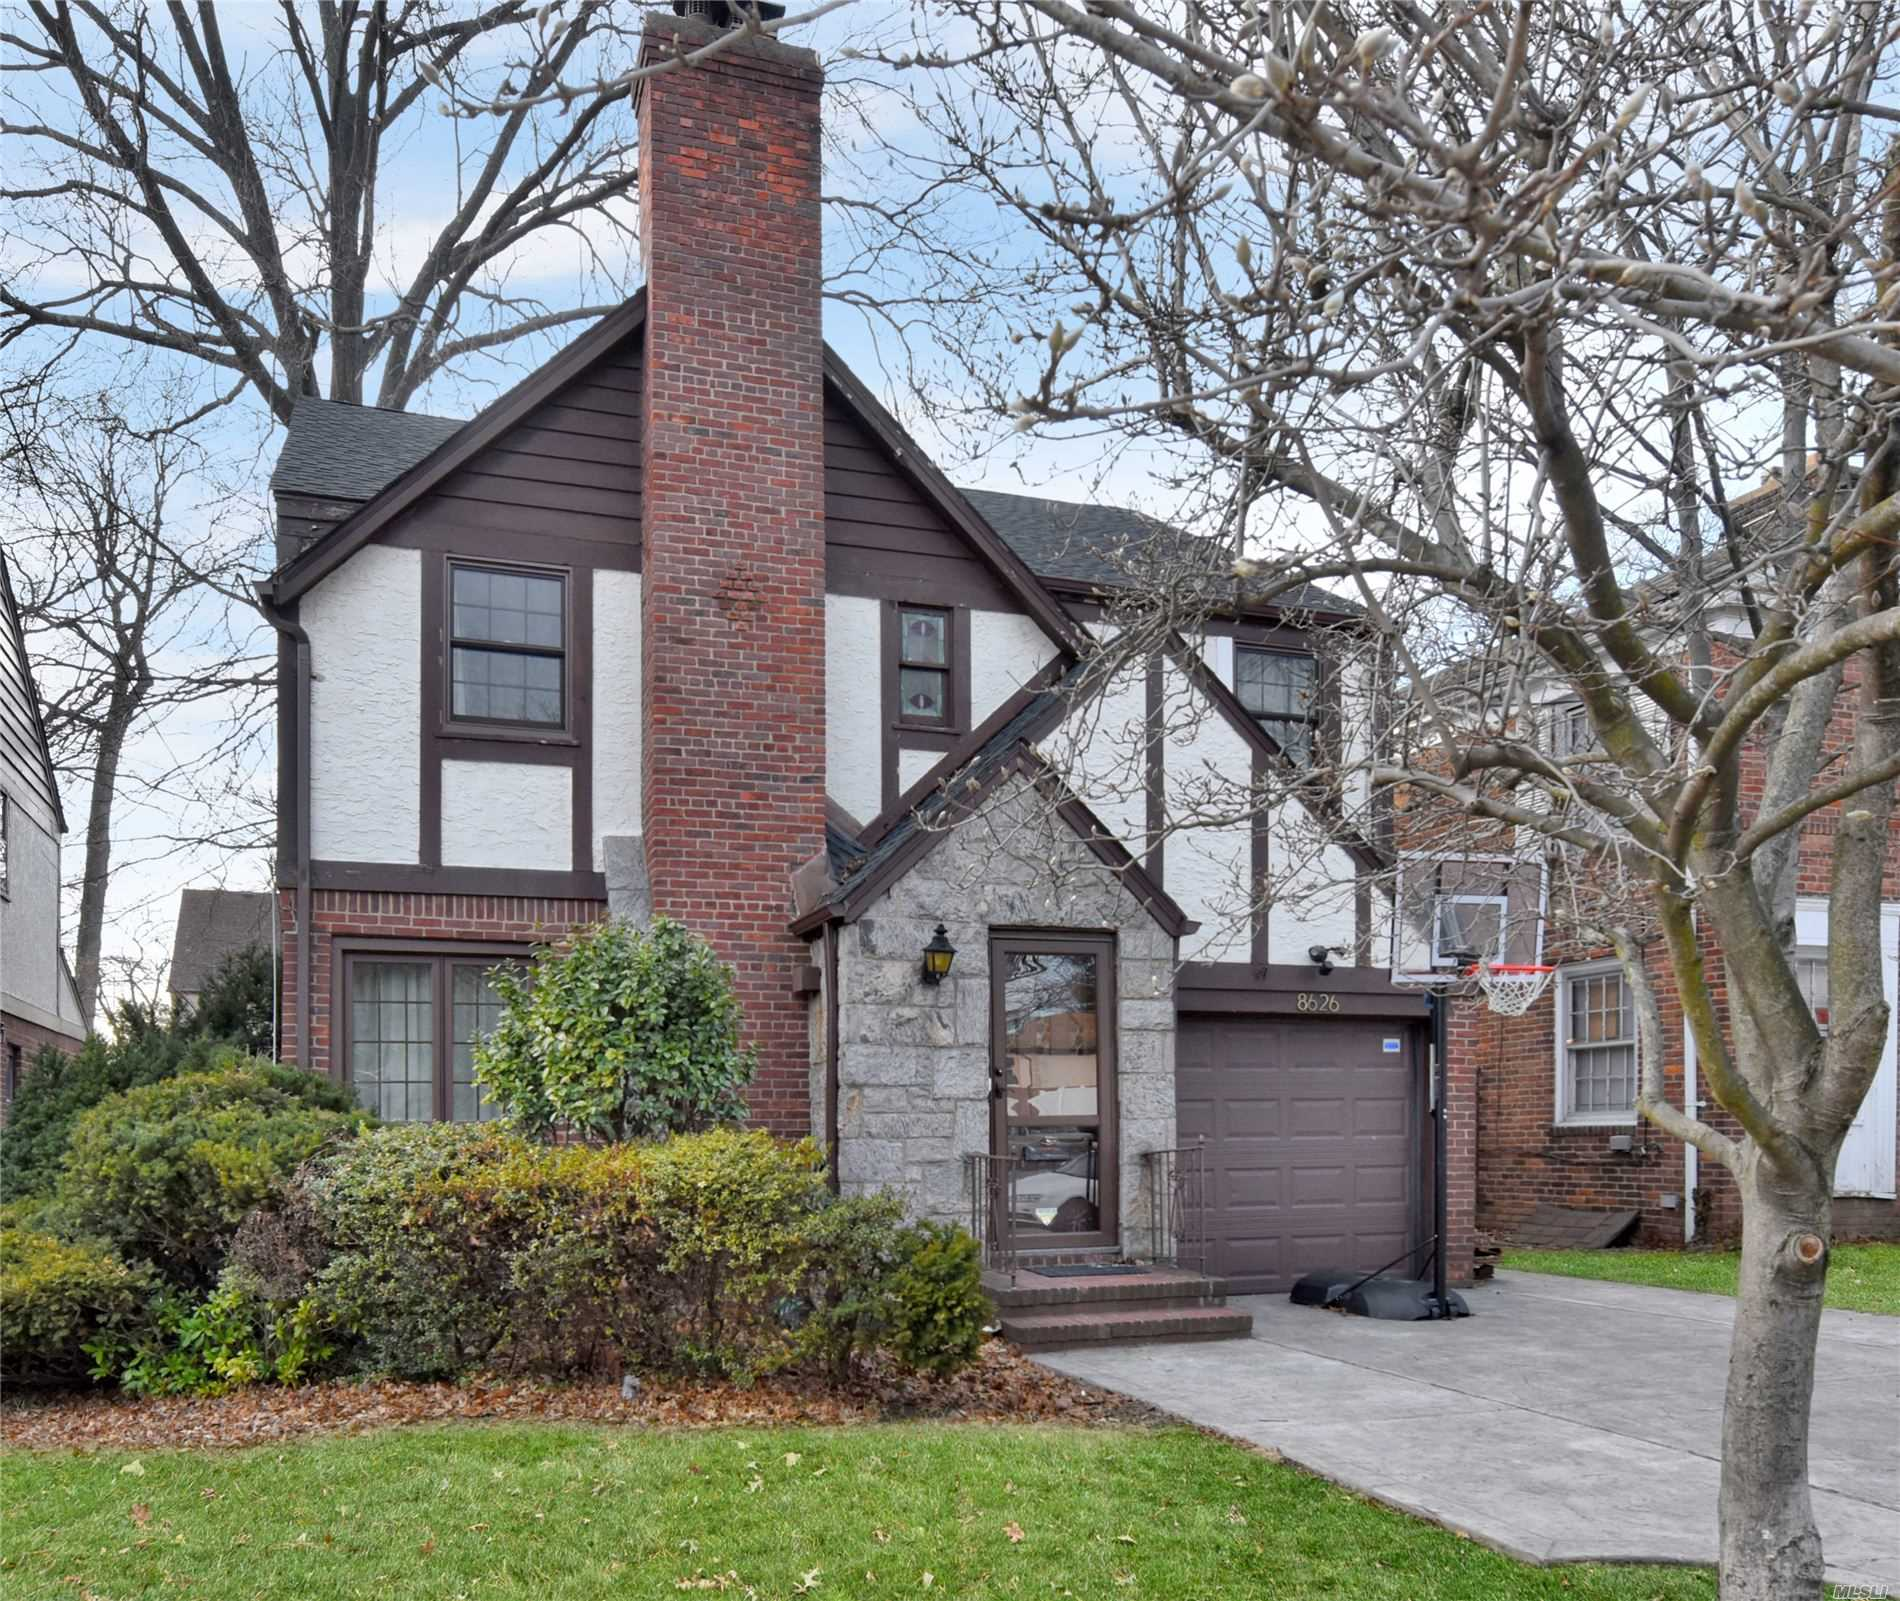 Attention Tudor lovers! A Spacious Home featuring 4 Bedroom, 2.5 Bath Colonial Is Perfectly Situated On An Oversized Lot On A Quiet Block In Jamaica Estates. This Gracious Home Is Loaded With Fine Tudor-Style Accoutrements, Such As Exposed Brick Interior Walls On Two Floors, Stained Glass Windows, Arched Niches, Moldings And Exposed Beams. New Windows, Roof, backyard, driveway, Water heater, and plumbing and electric.LED lights.New stainless steel appliances. Heated garage, and much MORE. SD26.